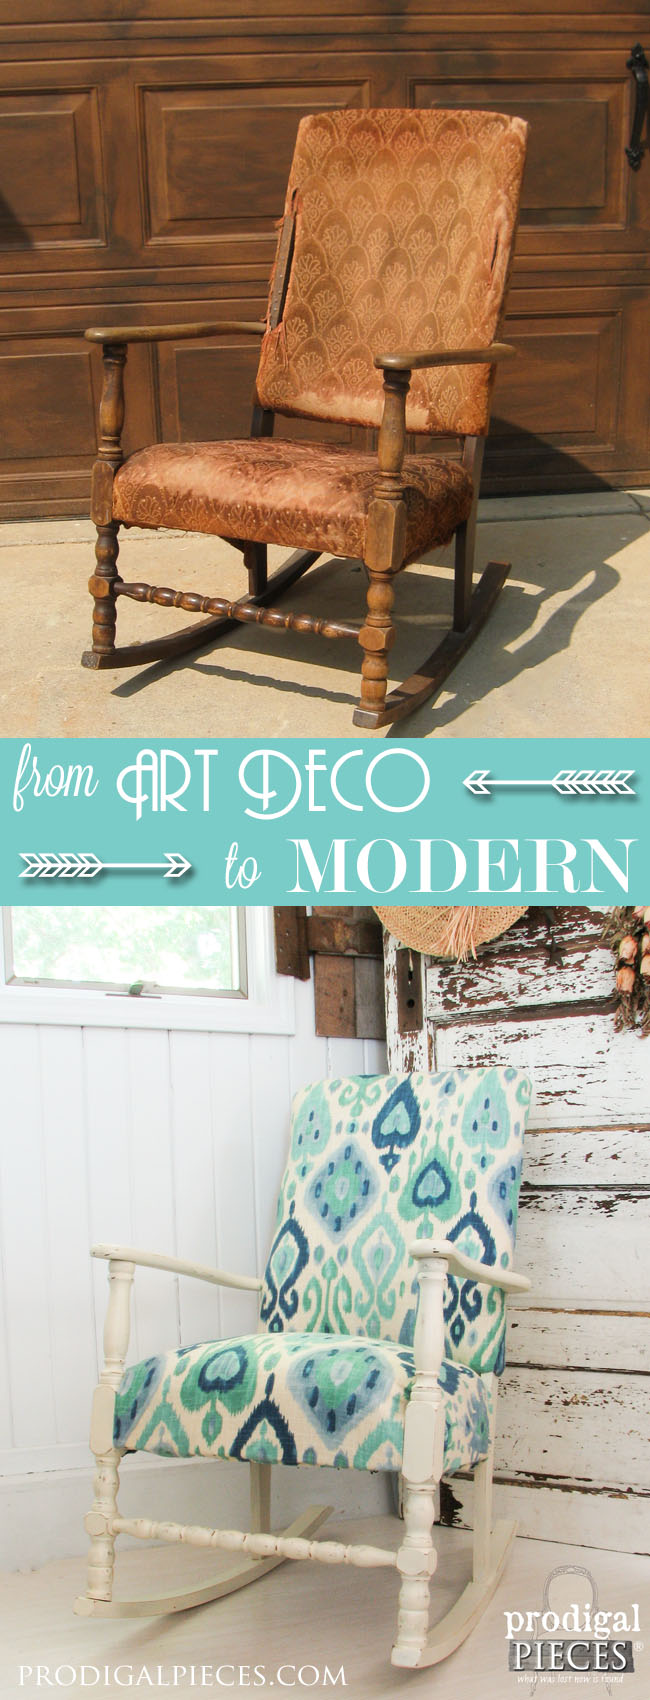 Worn out Art Deco Rocking Chair Gets a Modern Ikat Facelift by Prodigal Pieces | www.prodigalpieces.com